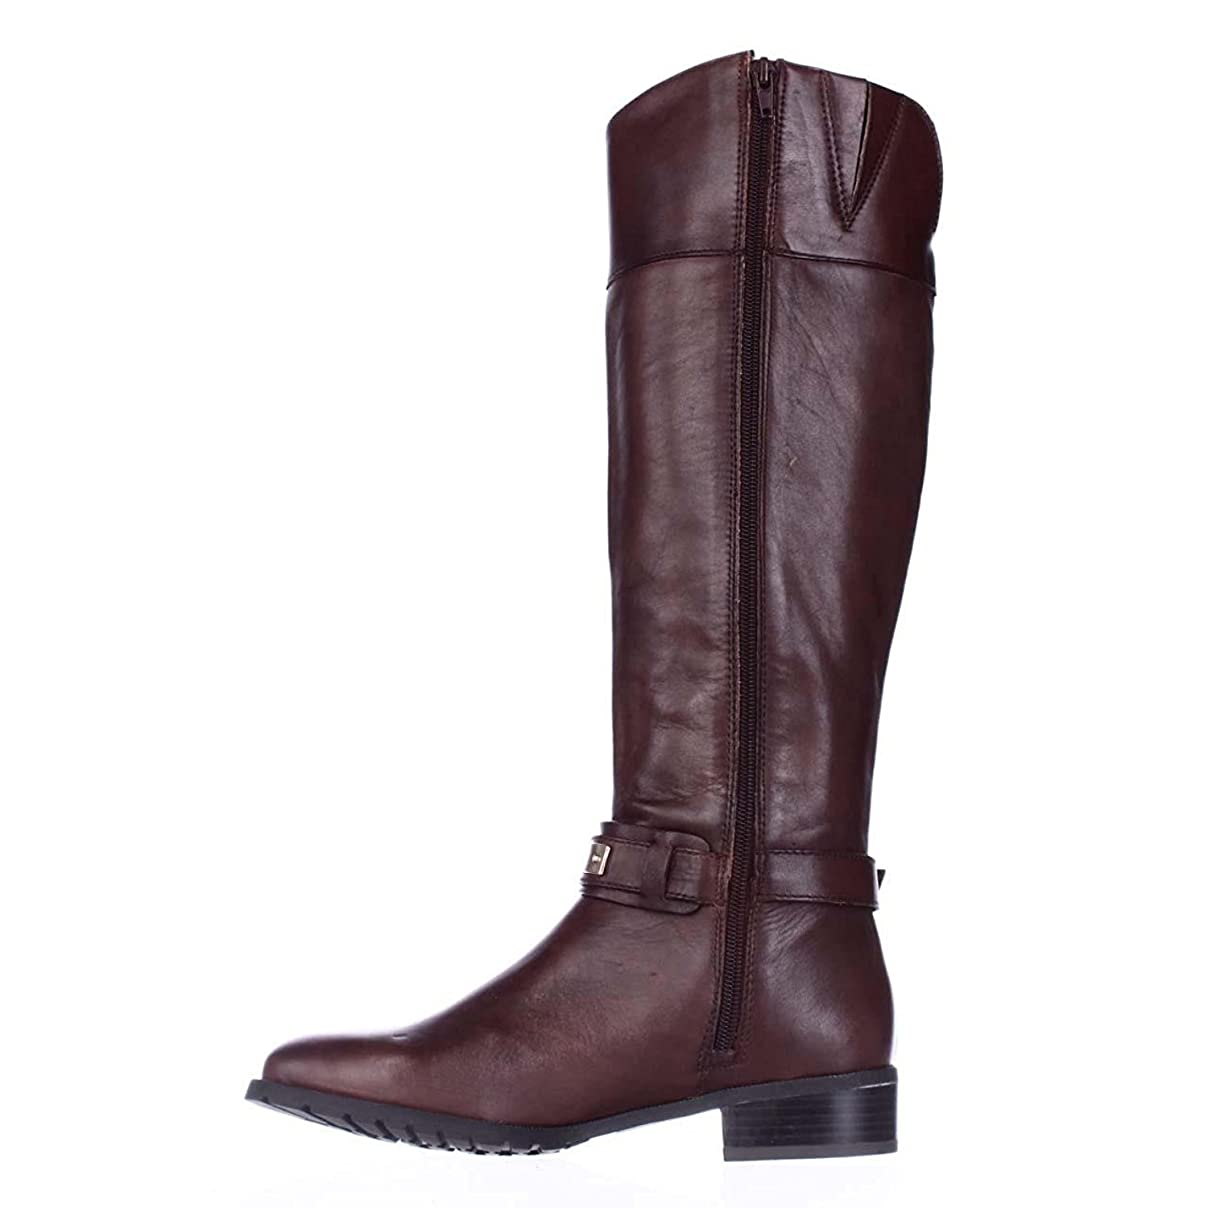 権利を与える酔って成熟したINC International Concepts Womens Fabbaa Round Toe Leather Fashion Boots, Brown, Size 6.5